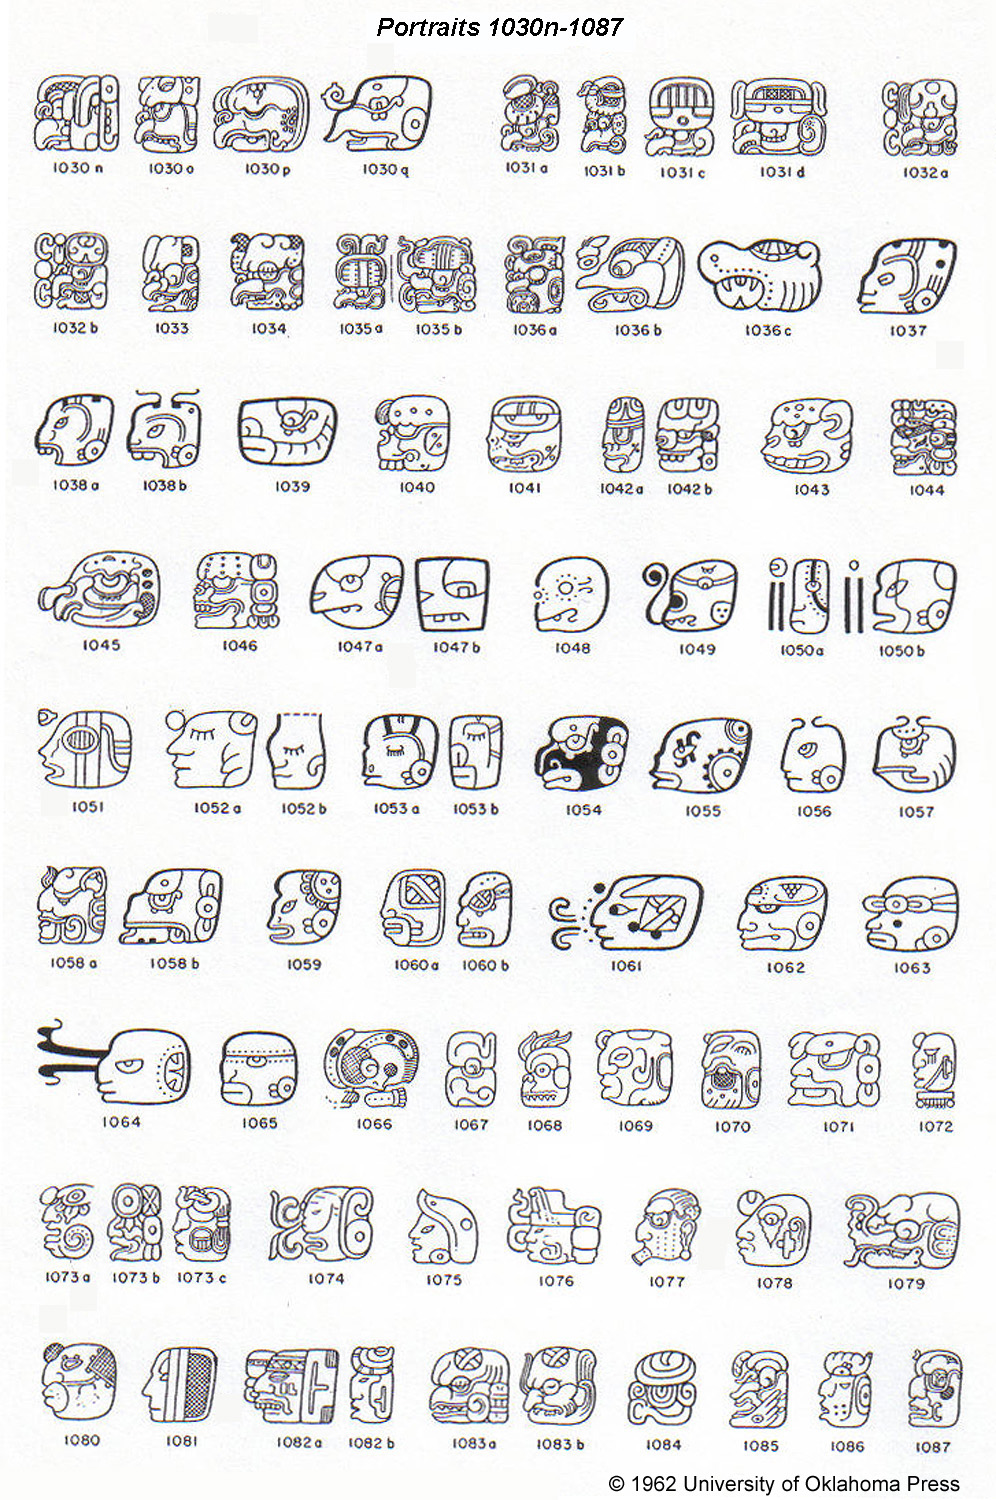 ... Alphabet 1000+ images about mexico on pinterest glyphs, mayan